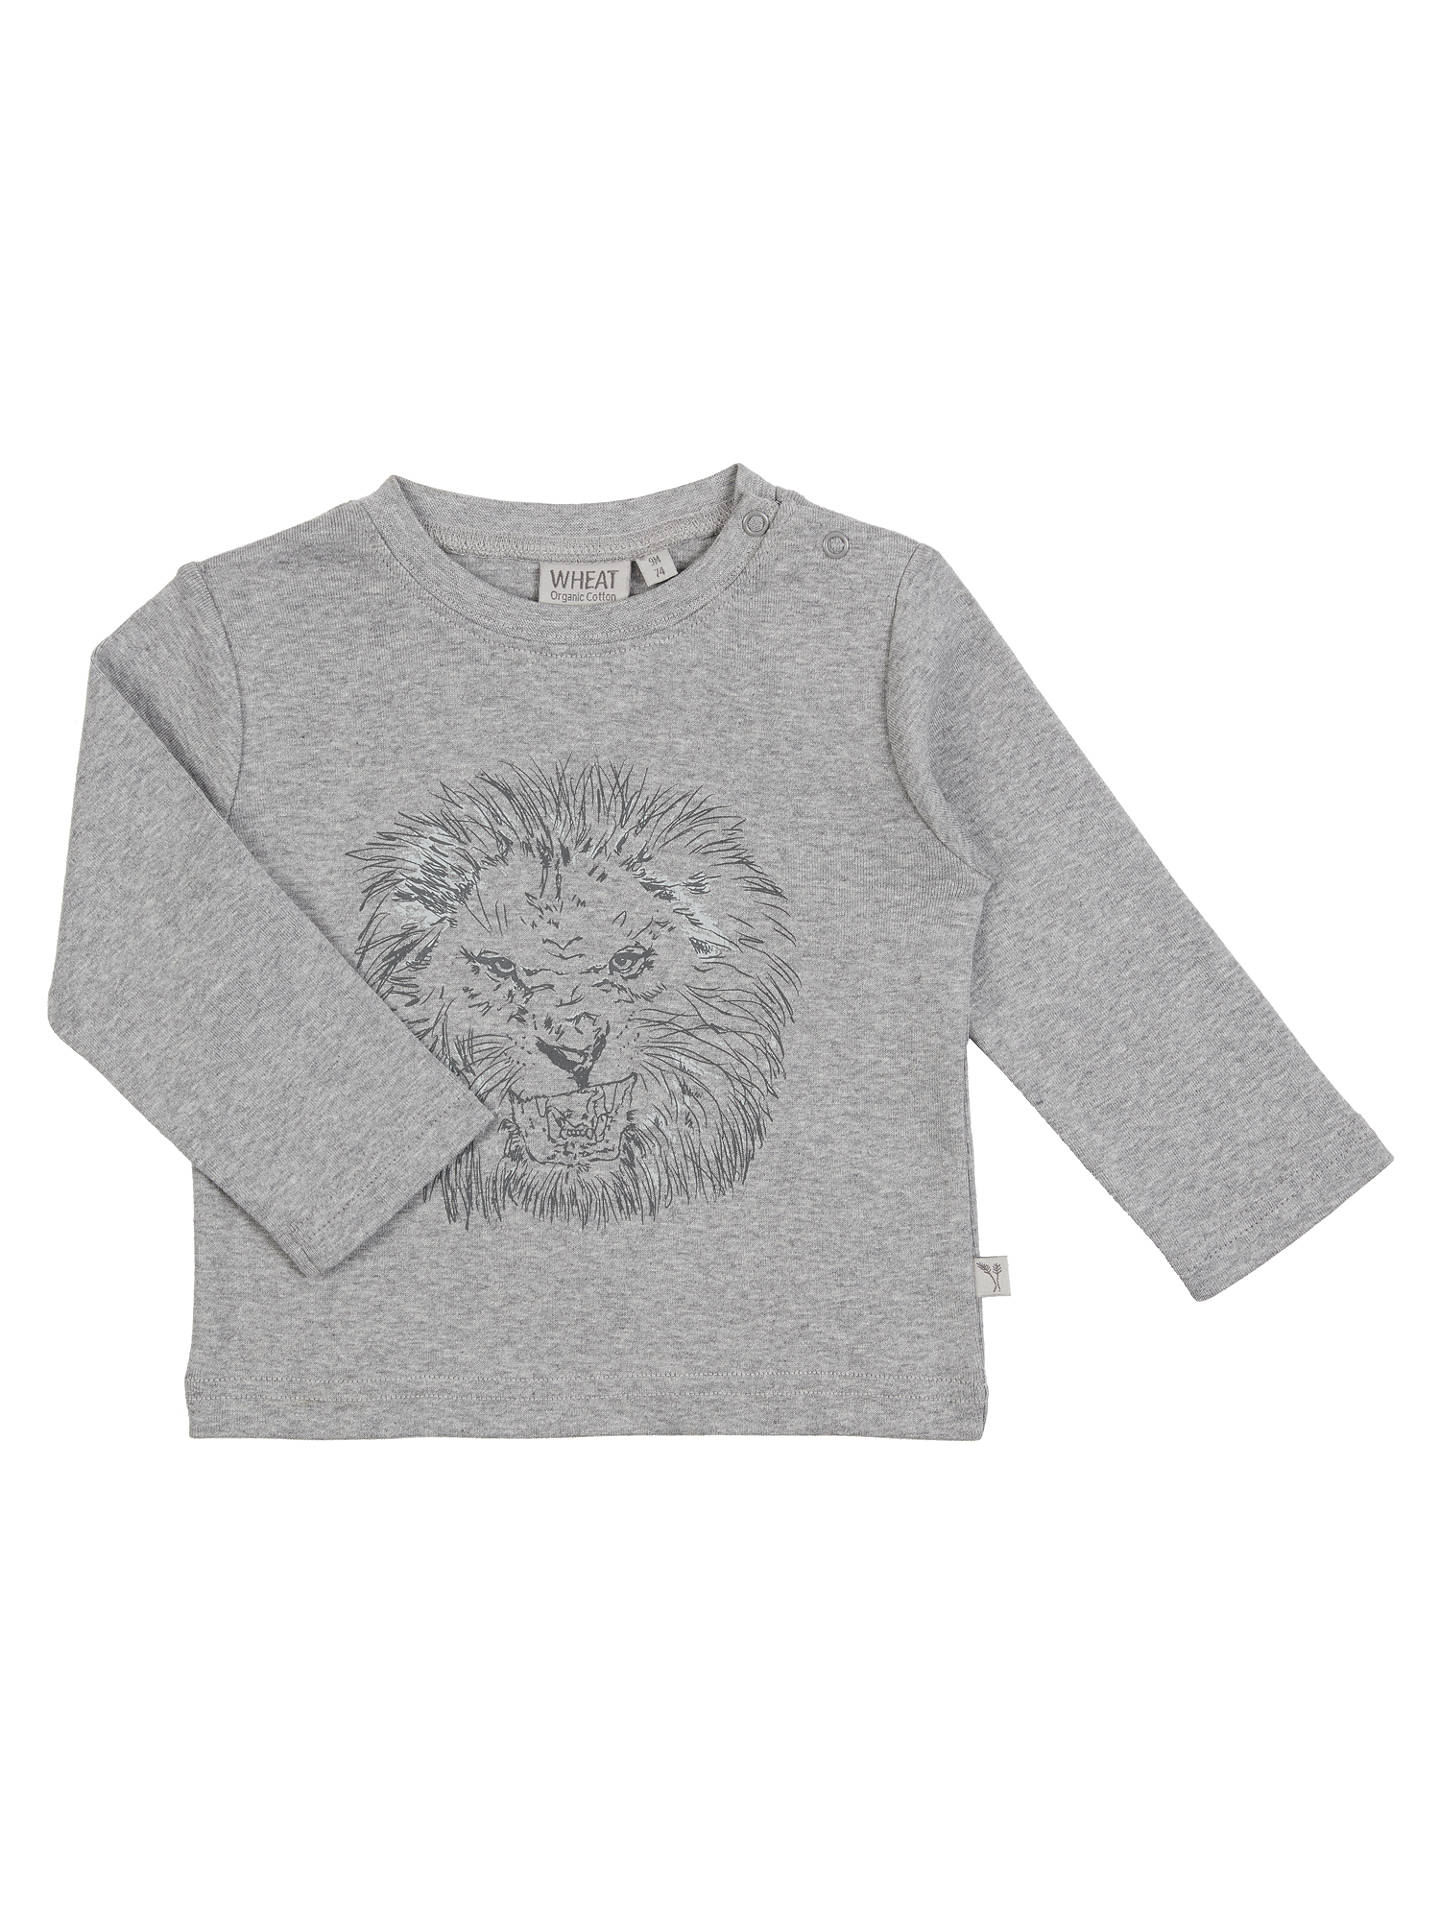 36024d75fbc0 Wheat Baby Angry Lion T-Shirt